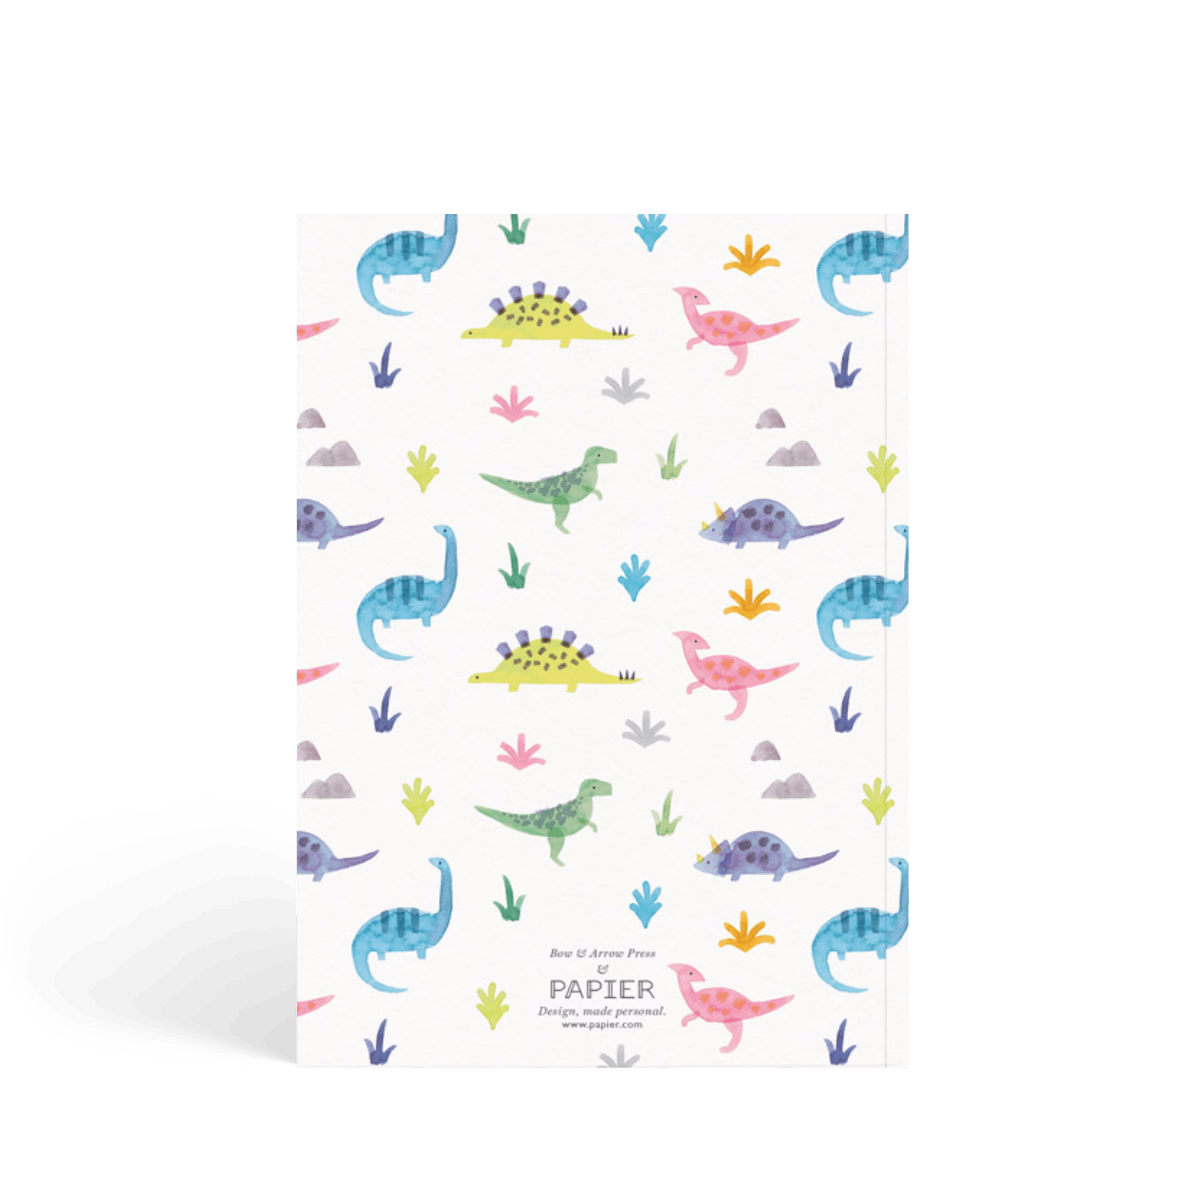 Https%3a%2f%2fwww.papier.com%2fproduct image%2f29525%2f5%2fbright dinosaurs 7442 back 1508252064.png?ixlib=rb 1.1